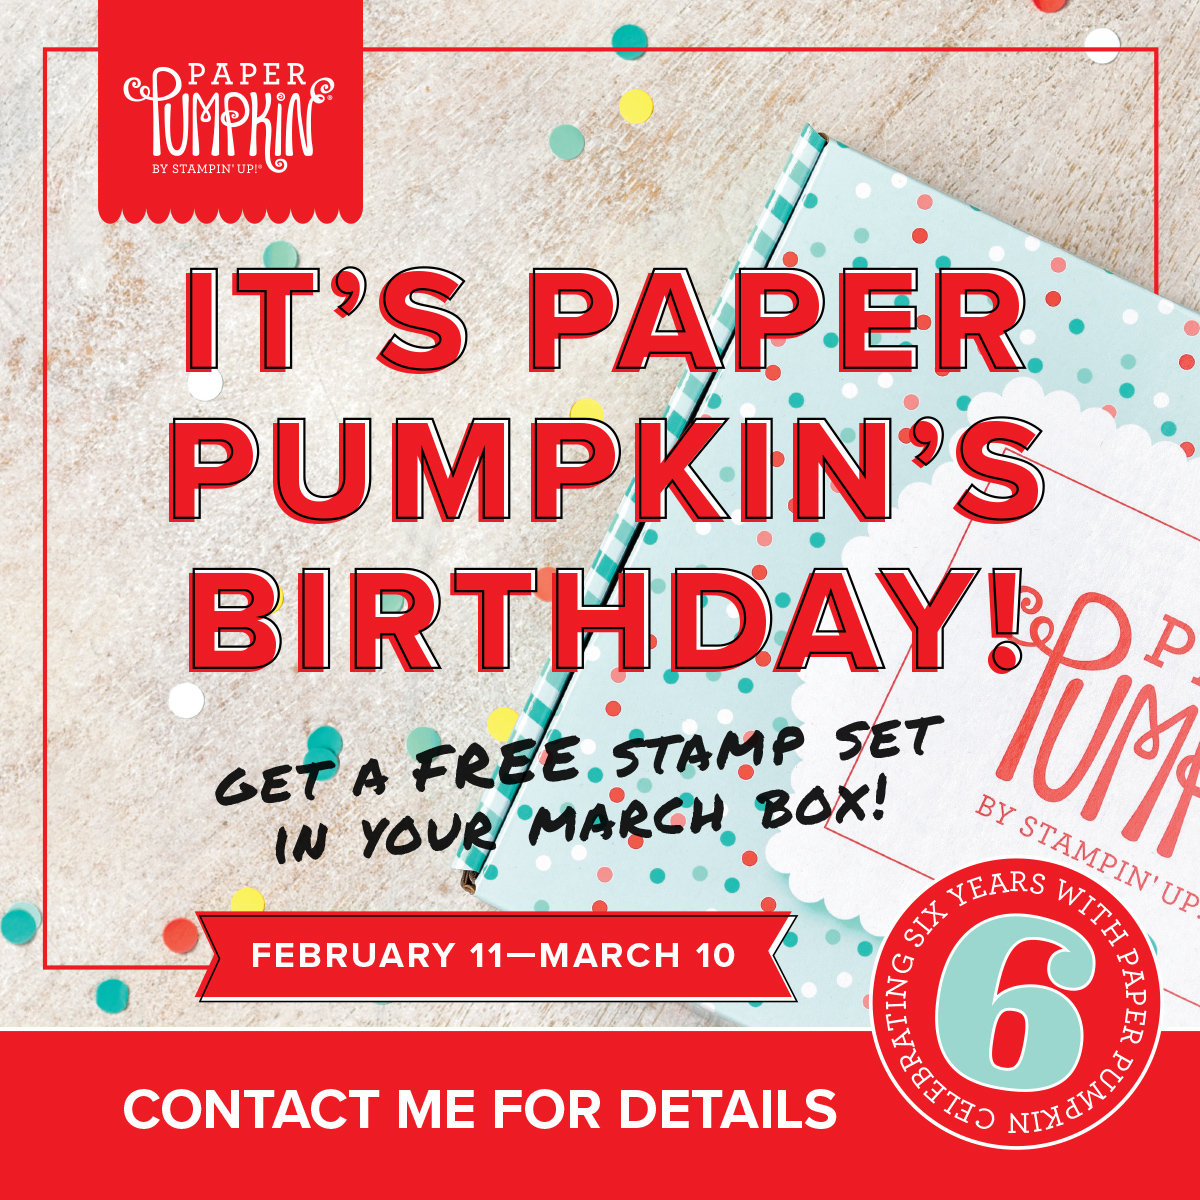 e038afd6e5 Happy Birthday Paper Pumpkin! I can t believe it s been 6 years! wow